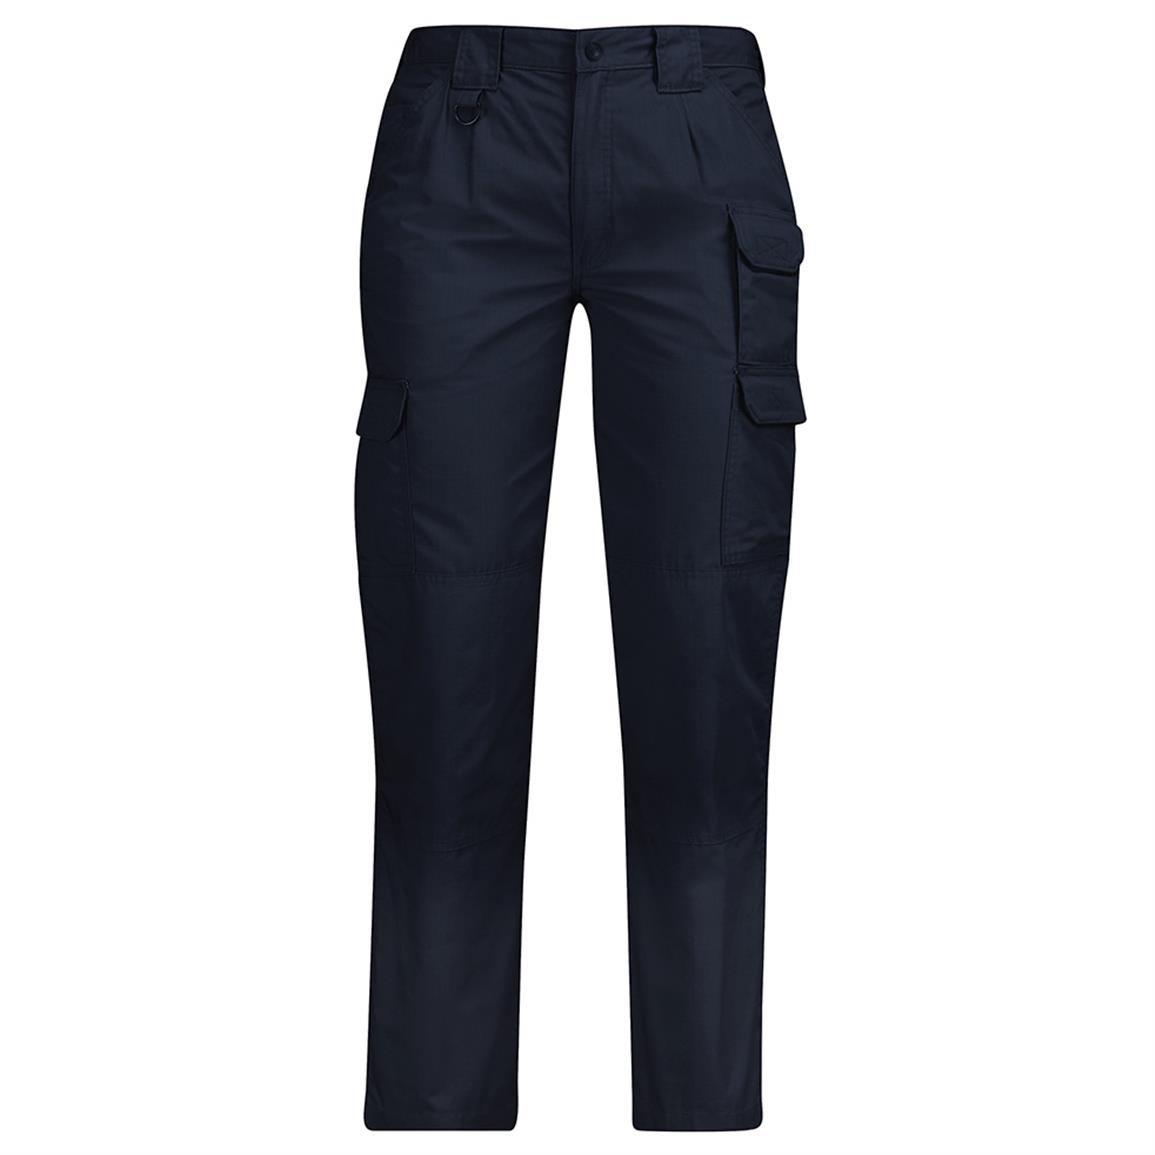 Propper Women's Lightweight Tactical Pants, LAPD Navy